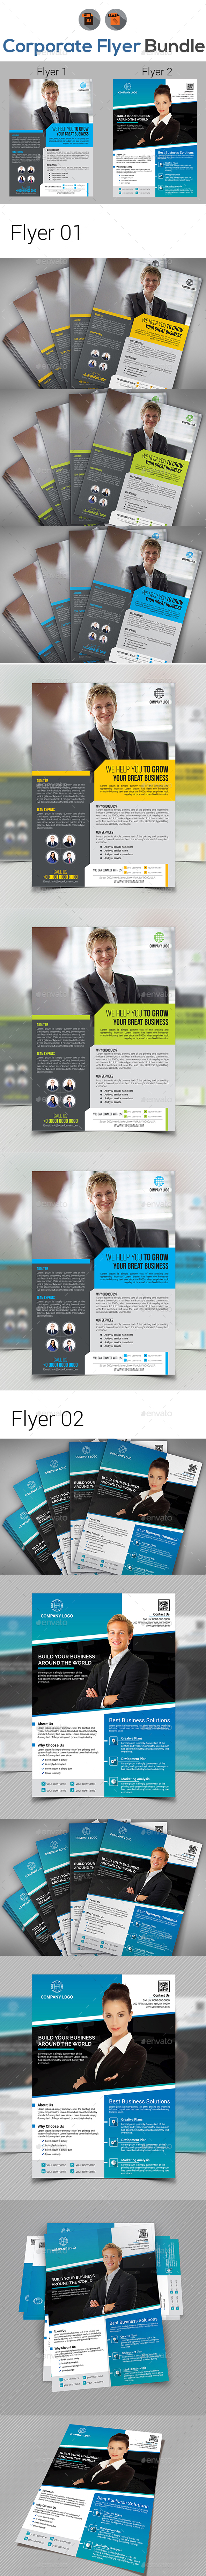 Corporate Business Flyer Bundle V3 - Corporate Flyers